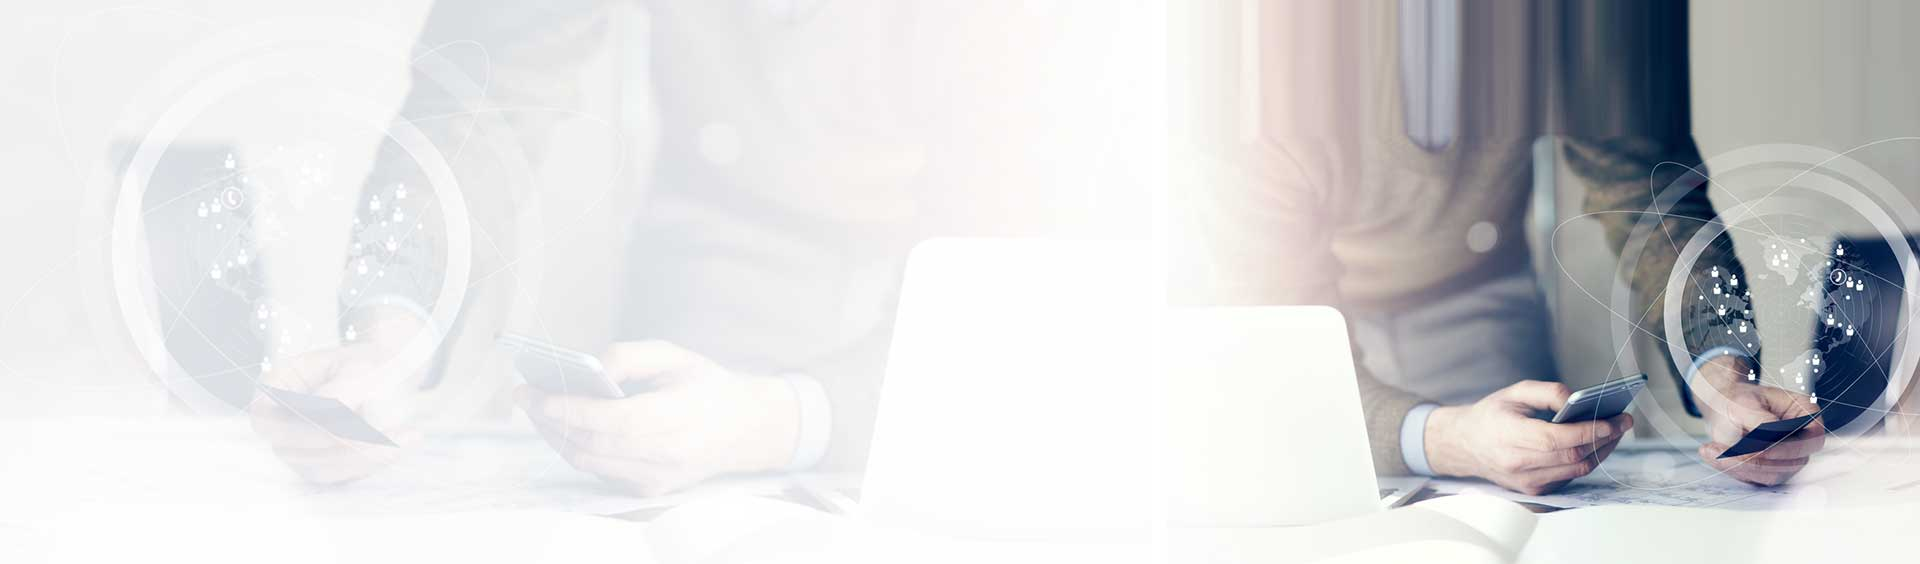 CSS Corp | Global Leaders in IT Services & Tech Support Solutions